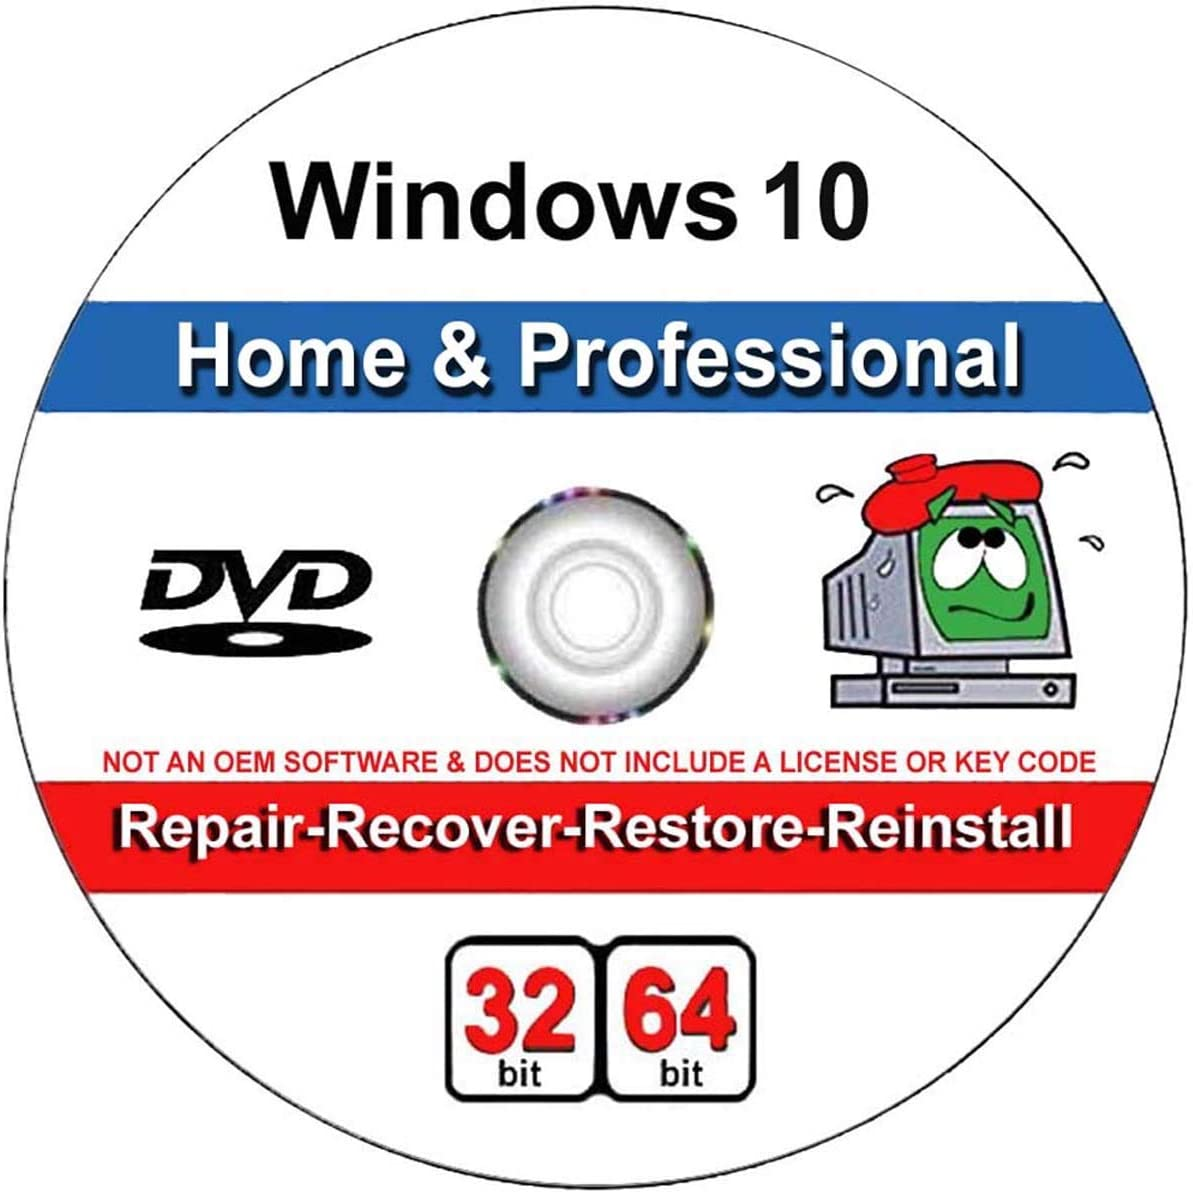 9th and Vine Compatible Windows 10 Home and Professional 32/64 Bit DVD. Install To Factory Fresh, Recover, Repair and Restore Boot Disc. Fix PC, Laptop and Desktop.